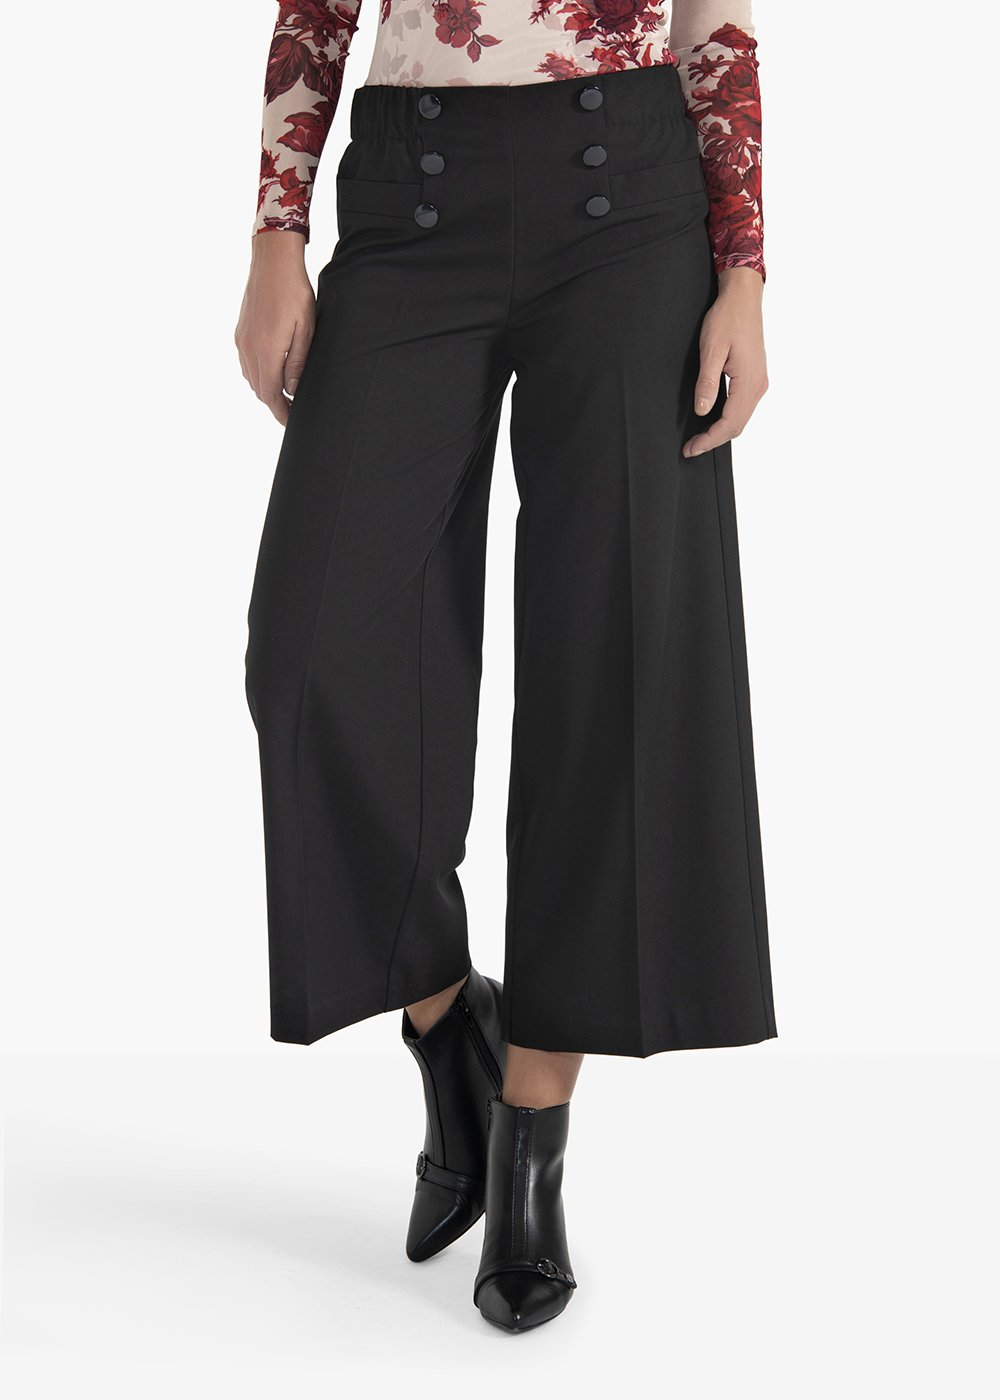 Short palazzo trousers Poel with buttons in weist detail - Black - Woman